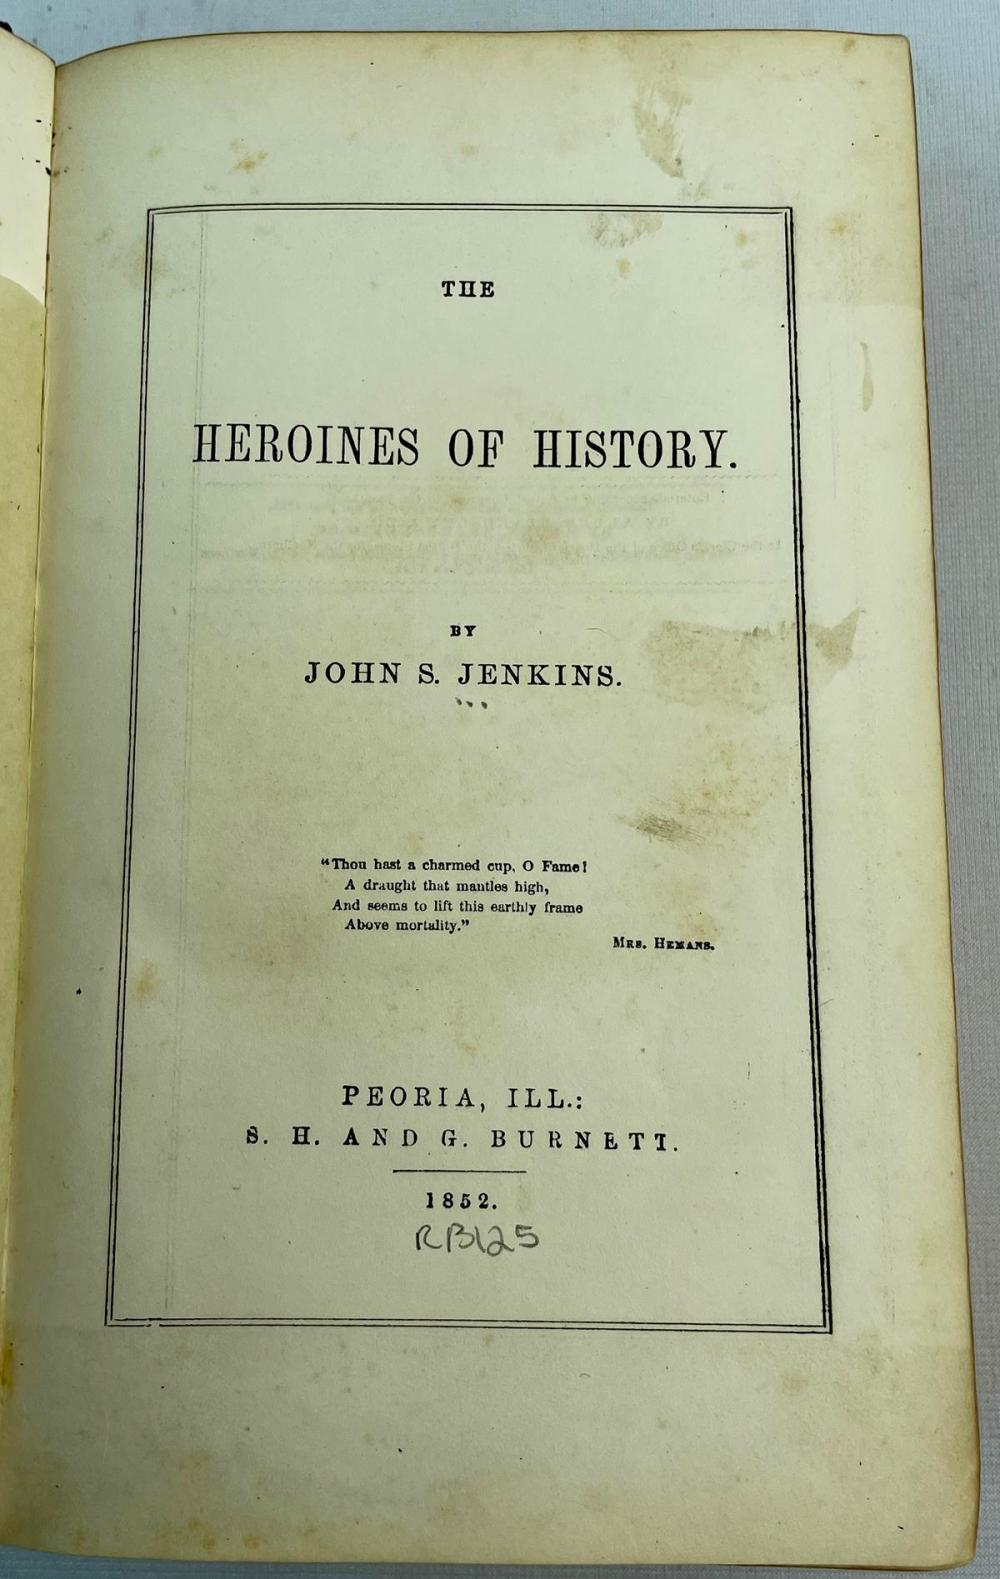 1852 The Heroines of History by John S. Jenkins ILLUSTRATED